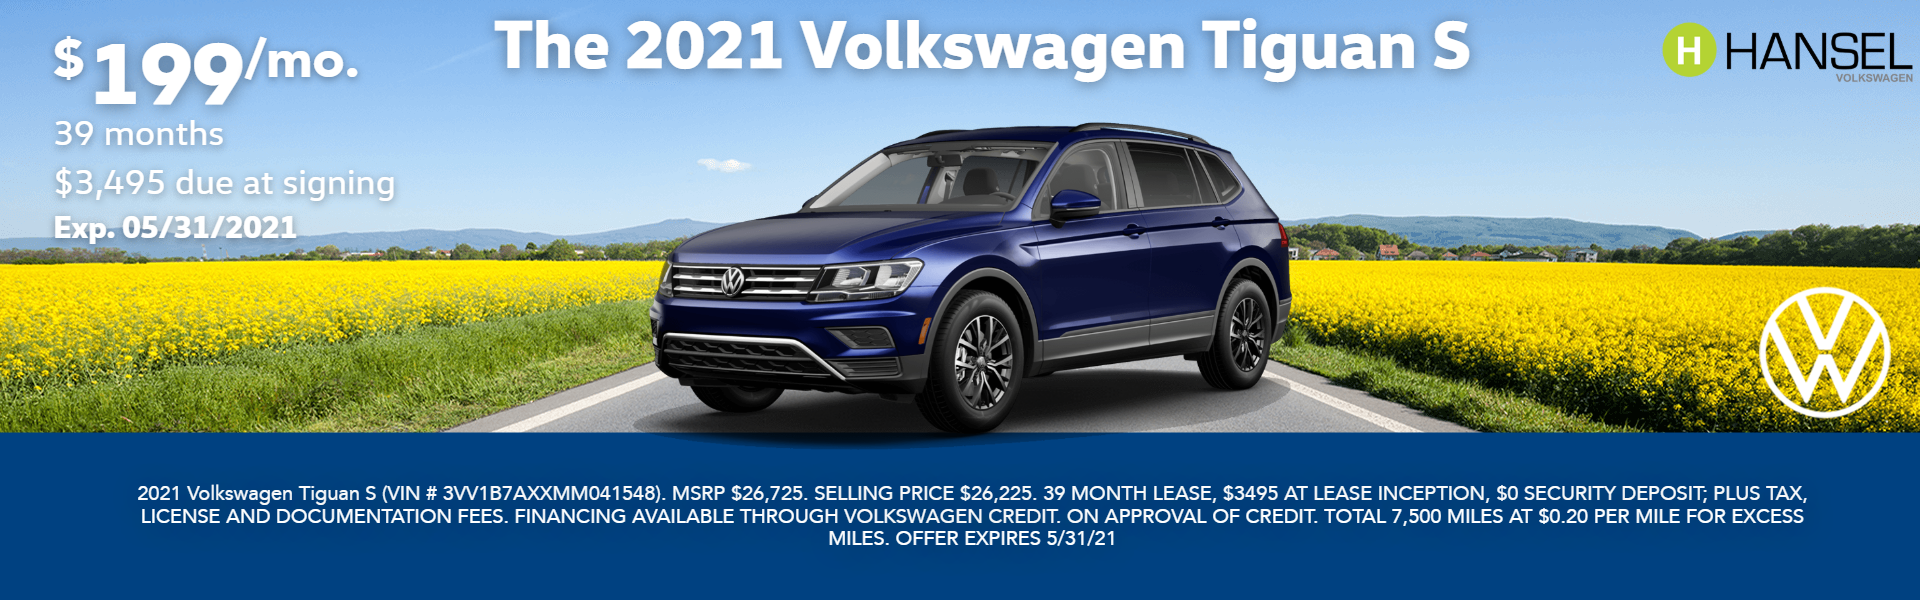 2021_Volkswagen_Tiguan_S_Mon May 10 2021 10_47_16 GMT-0700 (Pacific Daylight Time)